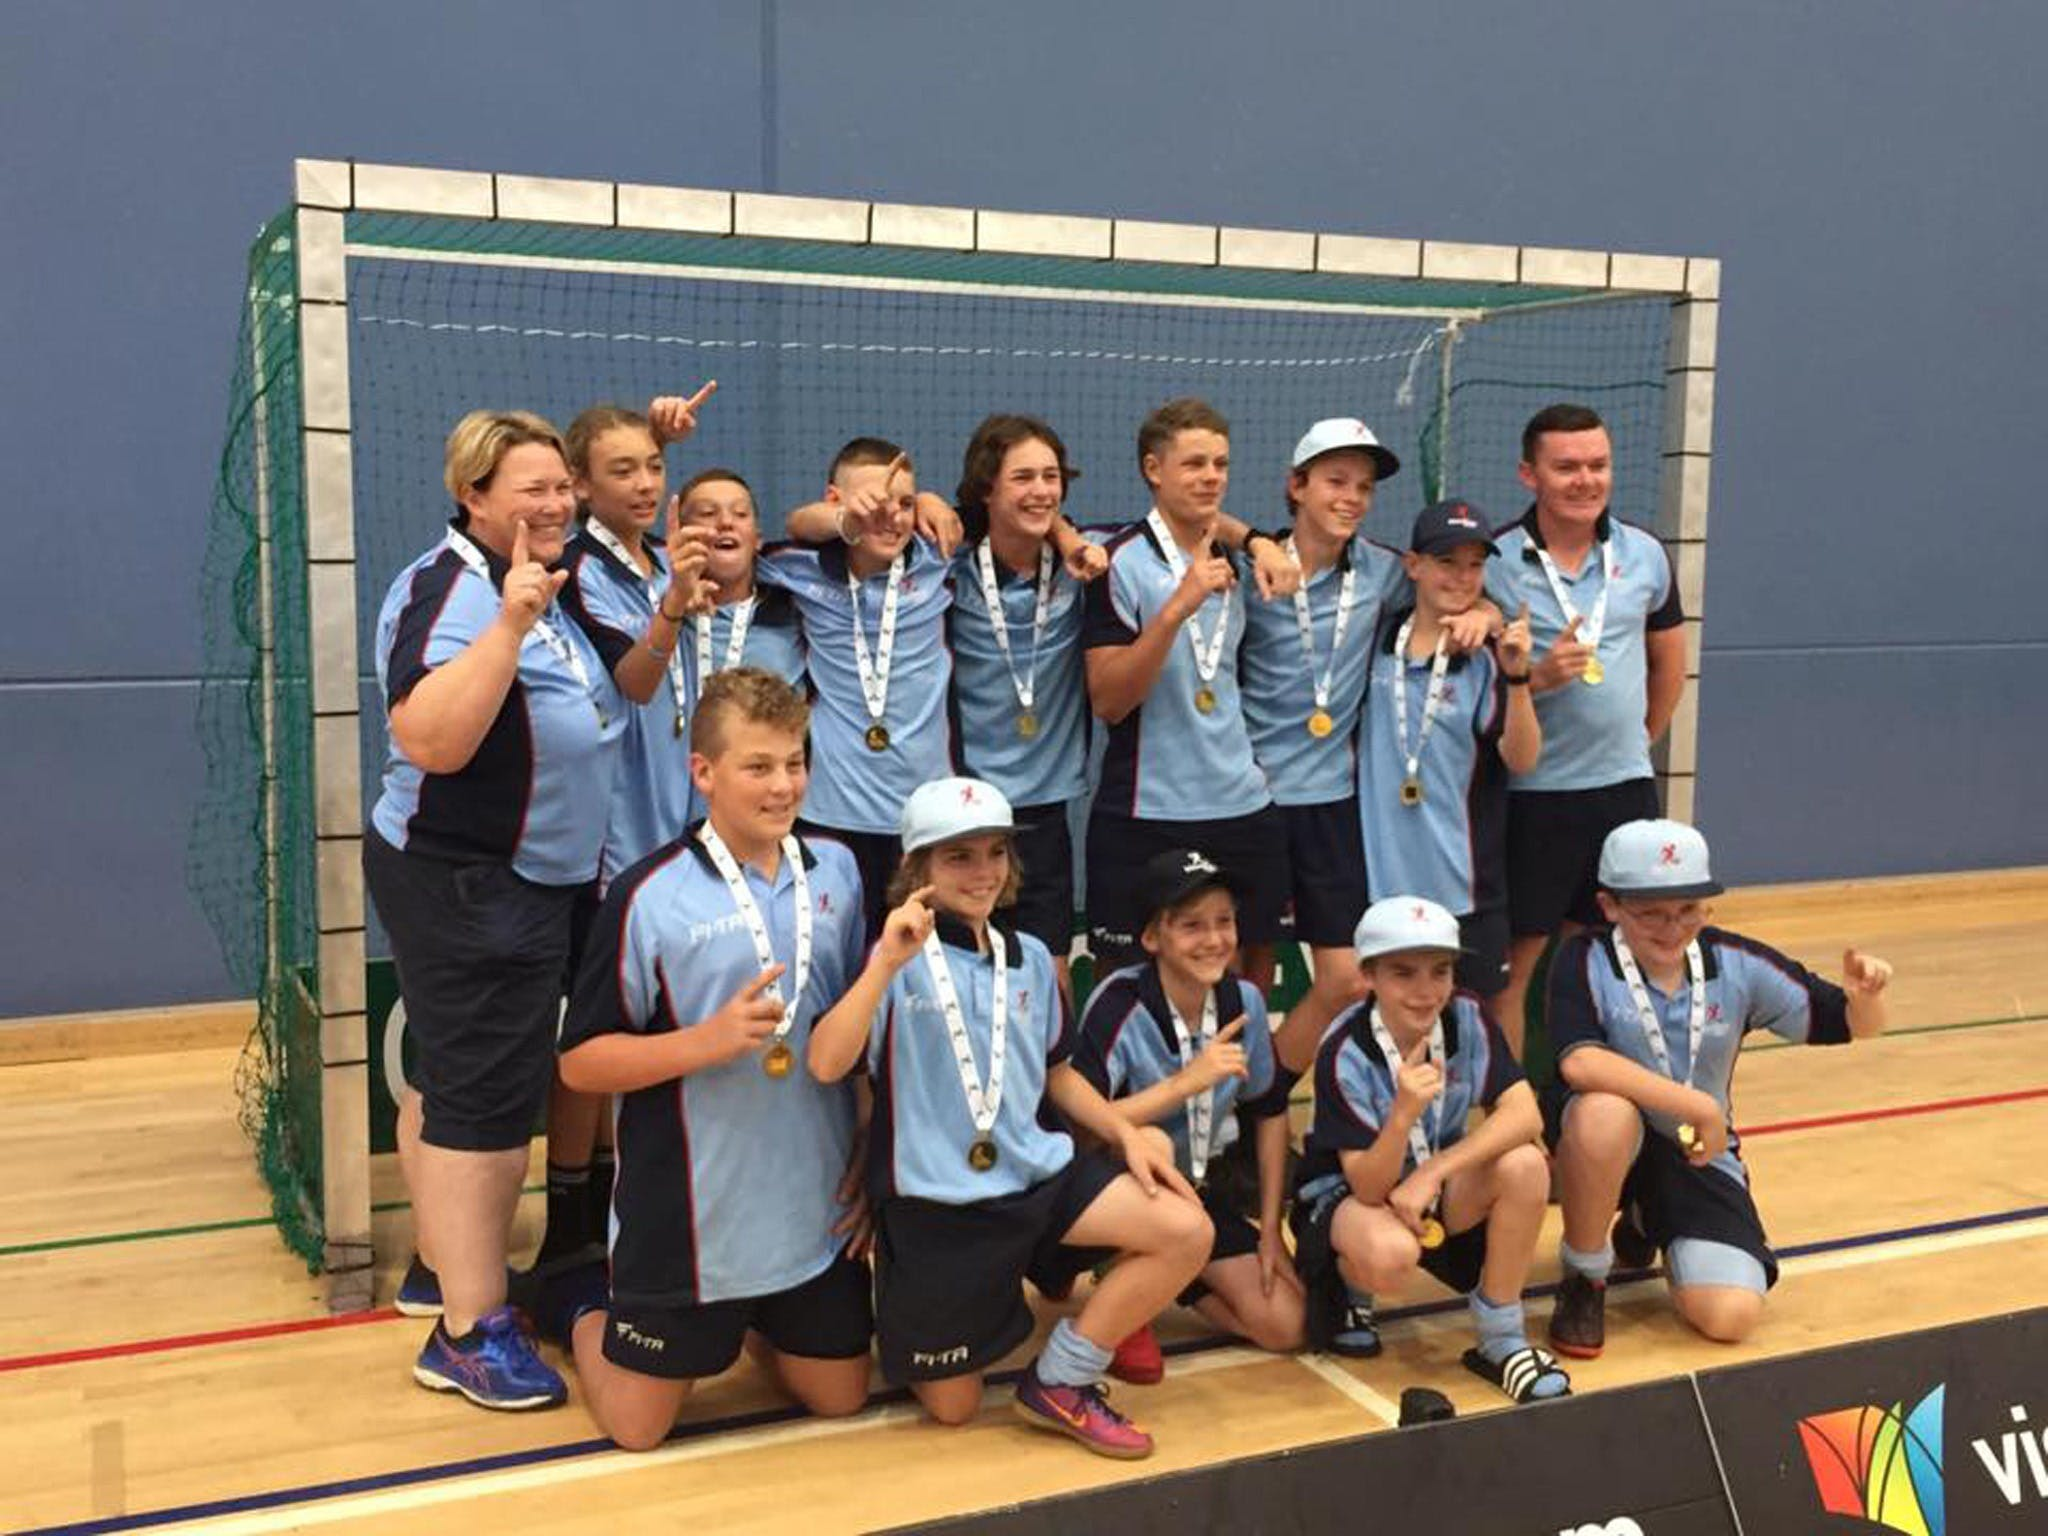 Hockey NSW Indoor State Championship  Under 18 Boys - Yarra Valley Accommodation